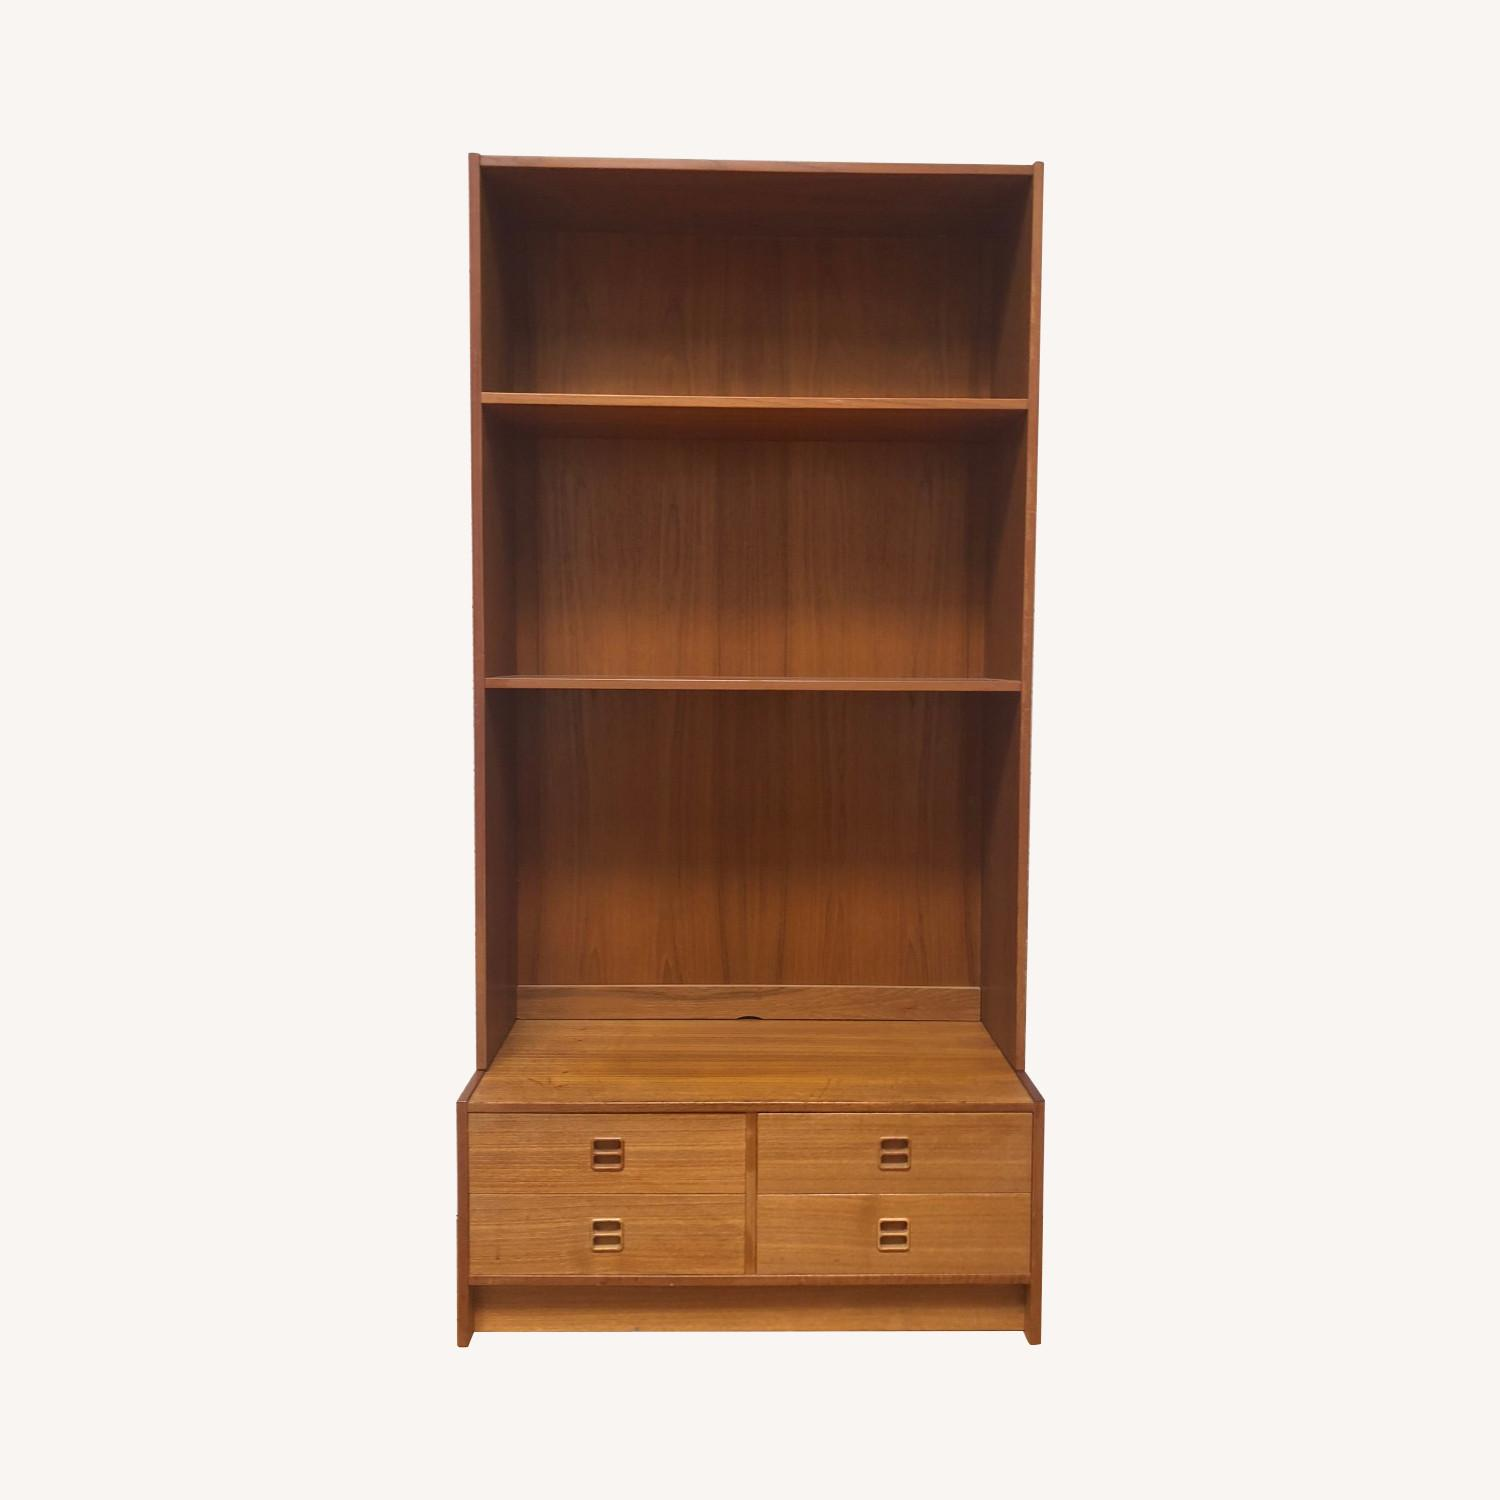 Danish Modern Shelving Unit with Four Drawers - image-0